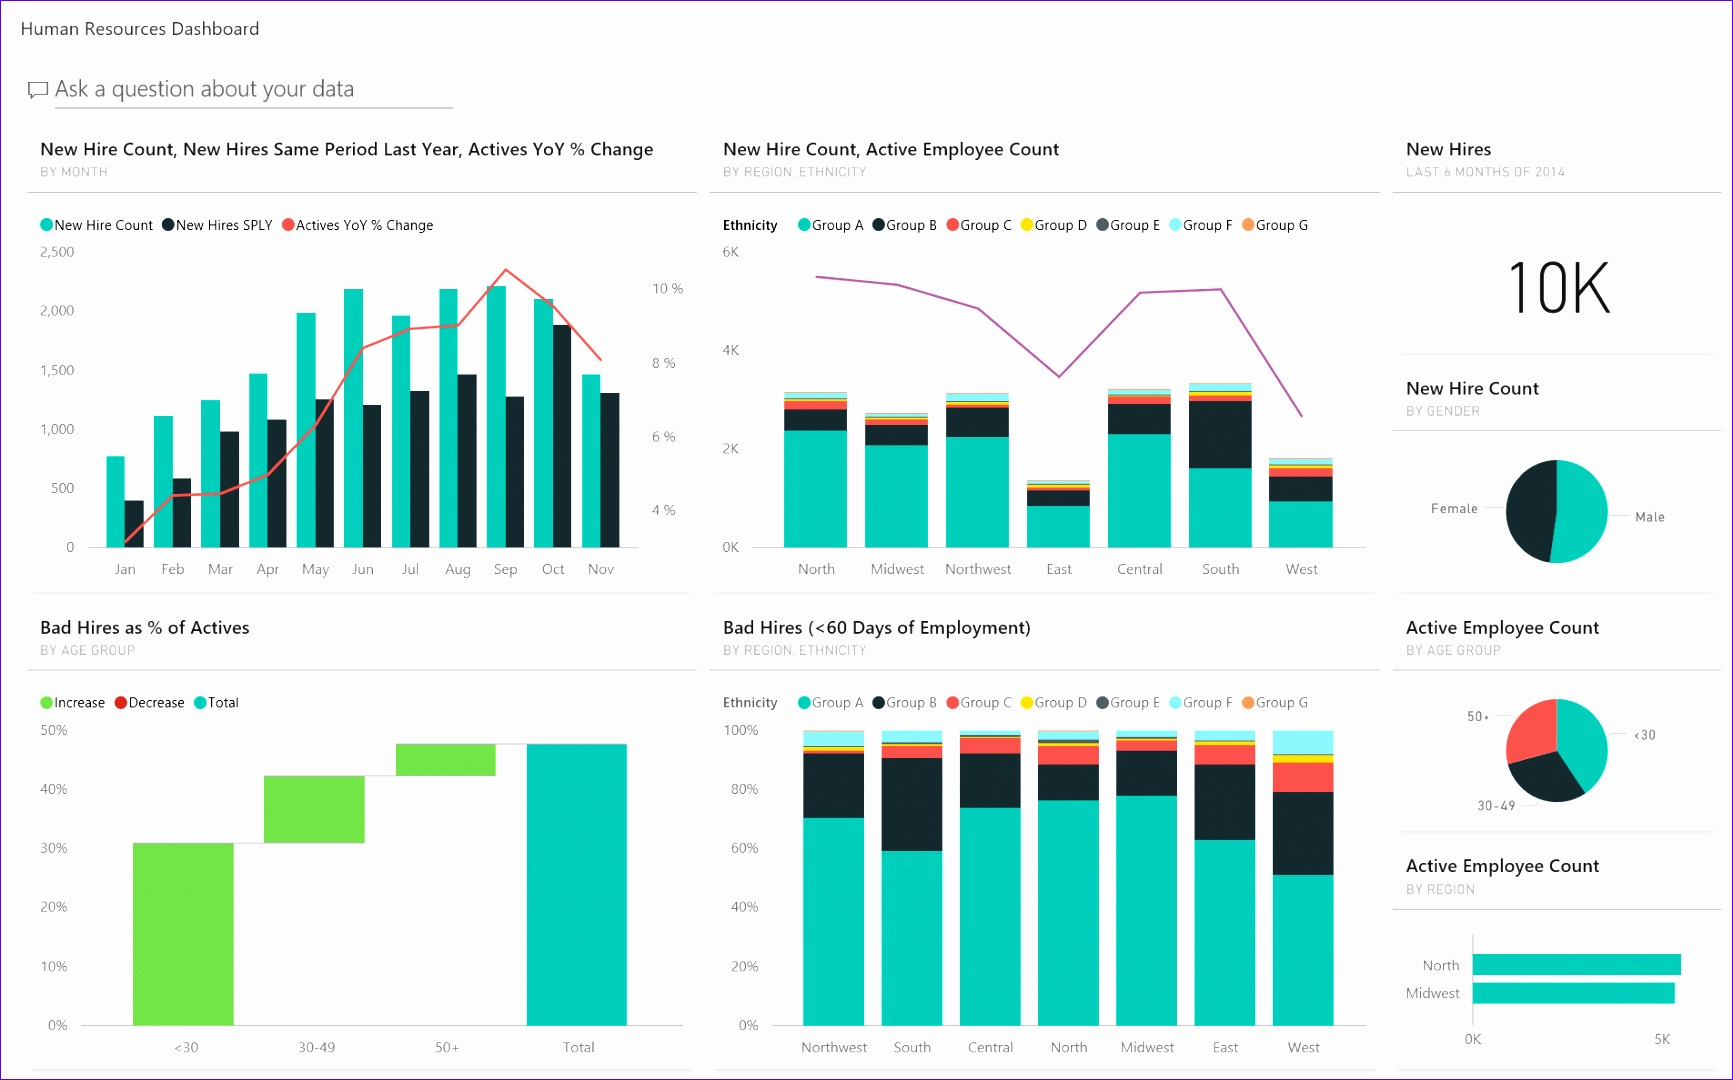 Excel Financial Dashboard Templates Plfhy Awesome Human Resources Sample for Power Bi Take A tour